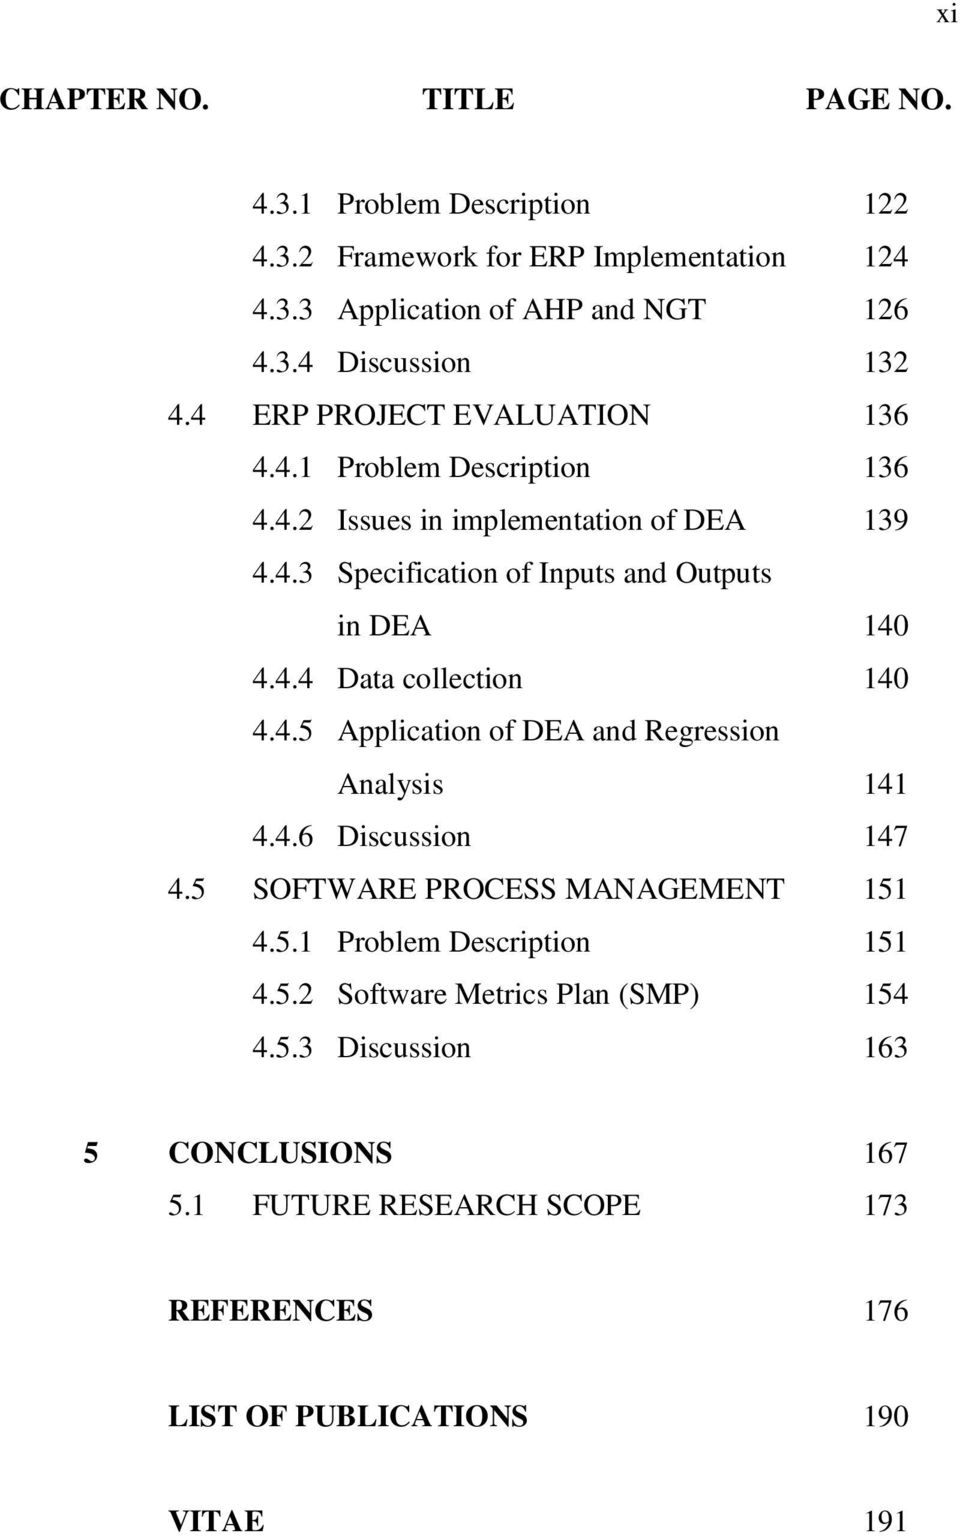 4.5 Application of DEA and Regression Analysis 141 4.4.6 Discussion 147 4.5 SOFTWARE PROCESS MANAGEMENT 151 4.5.1 Problem Description 151 4.5.2 Software Metrics Plan (SMP) 154 4.